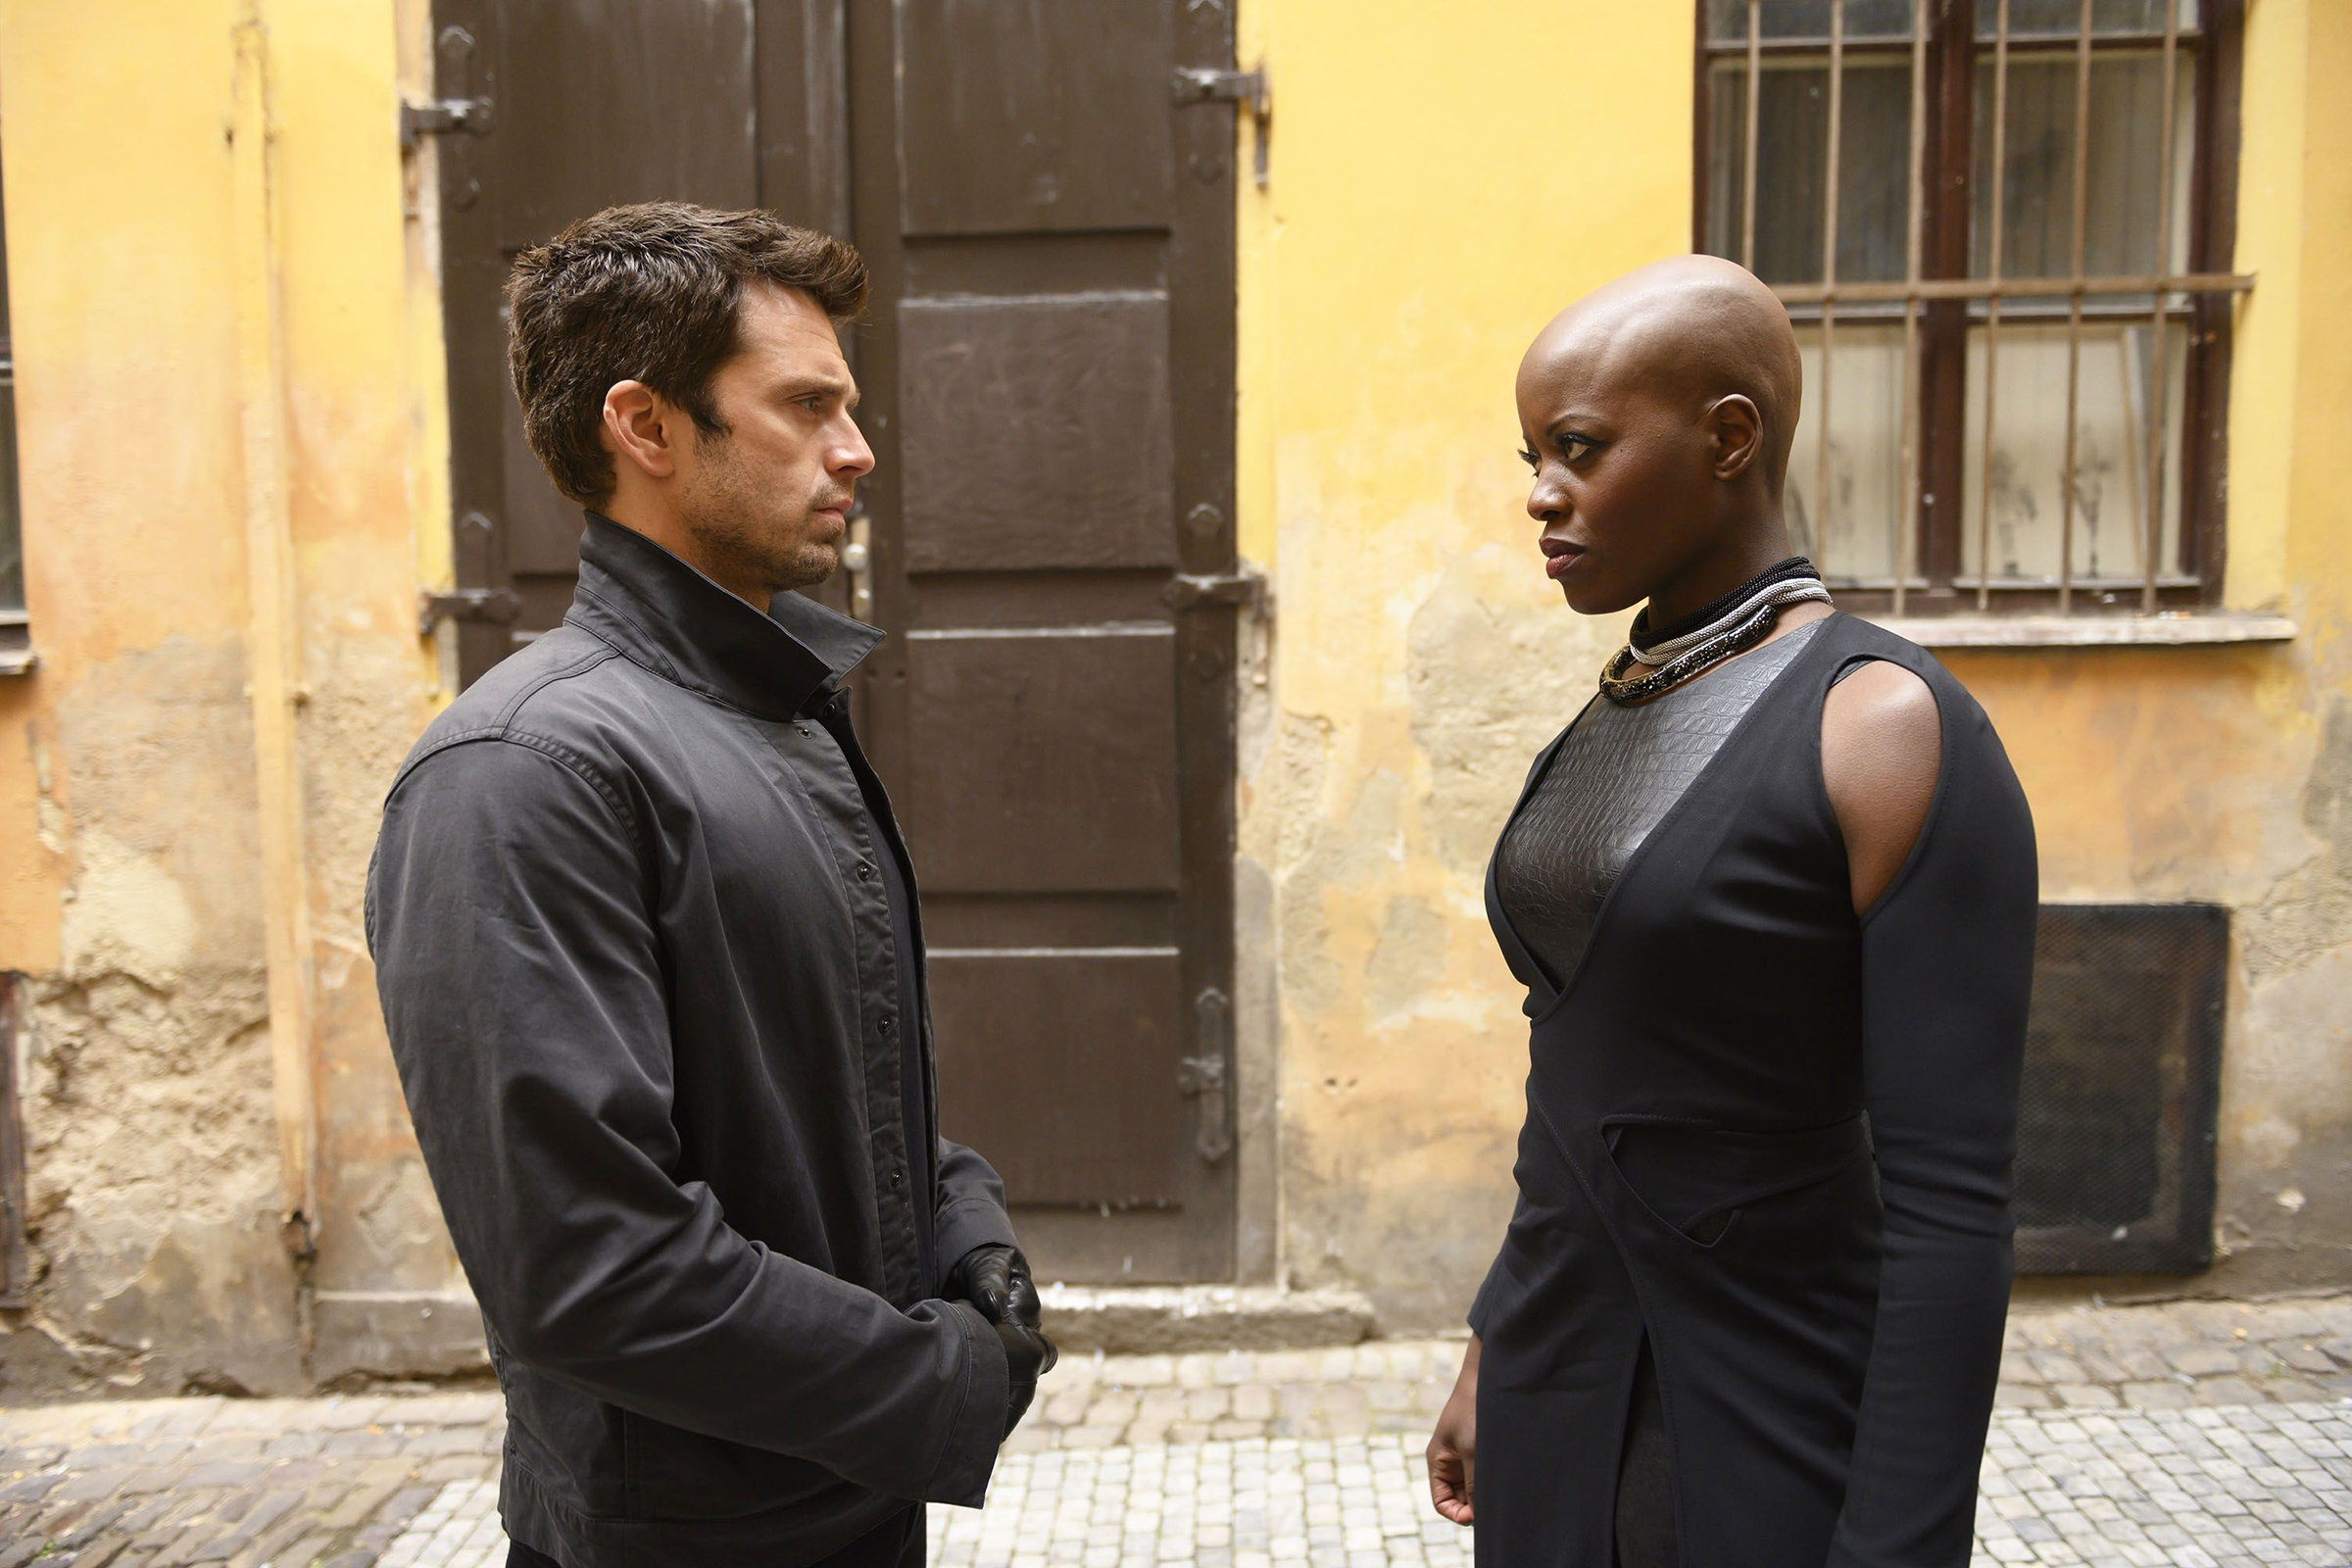 Bucky and Ayo stare intensely at each other while several feet apart. There is a dilapidated yellow building in the background.